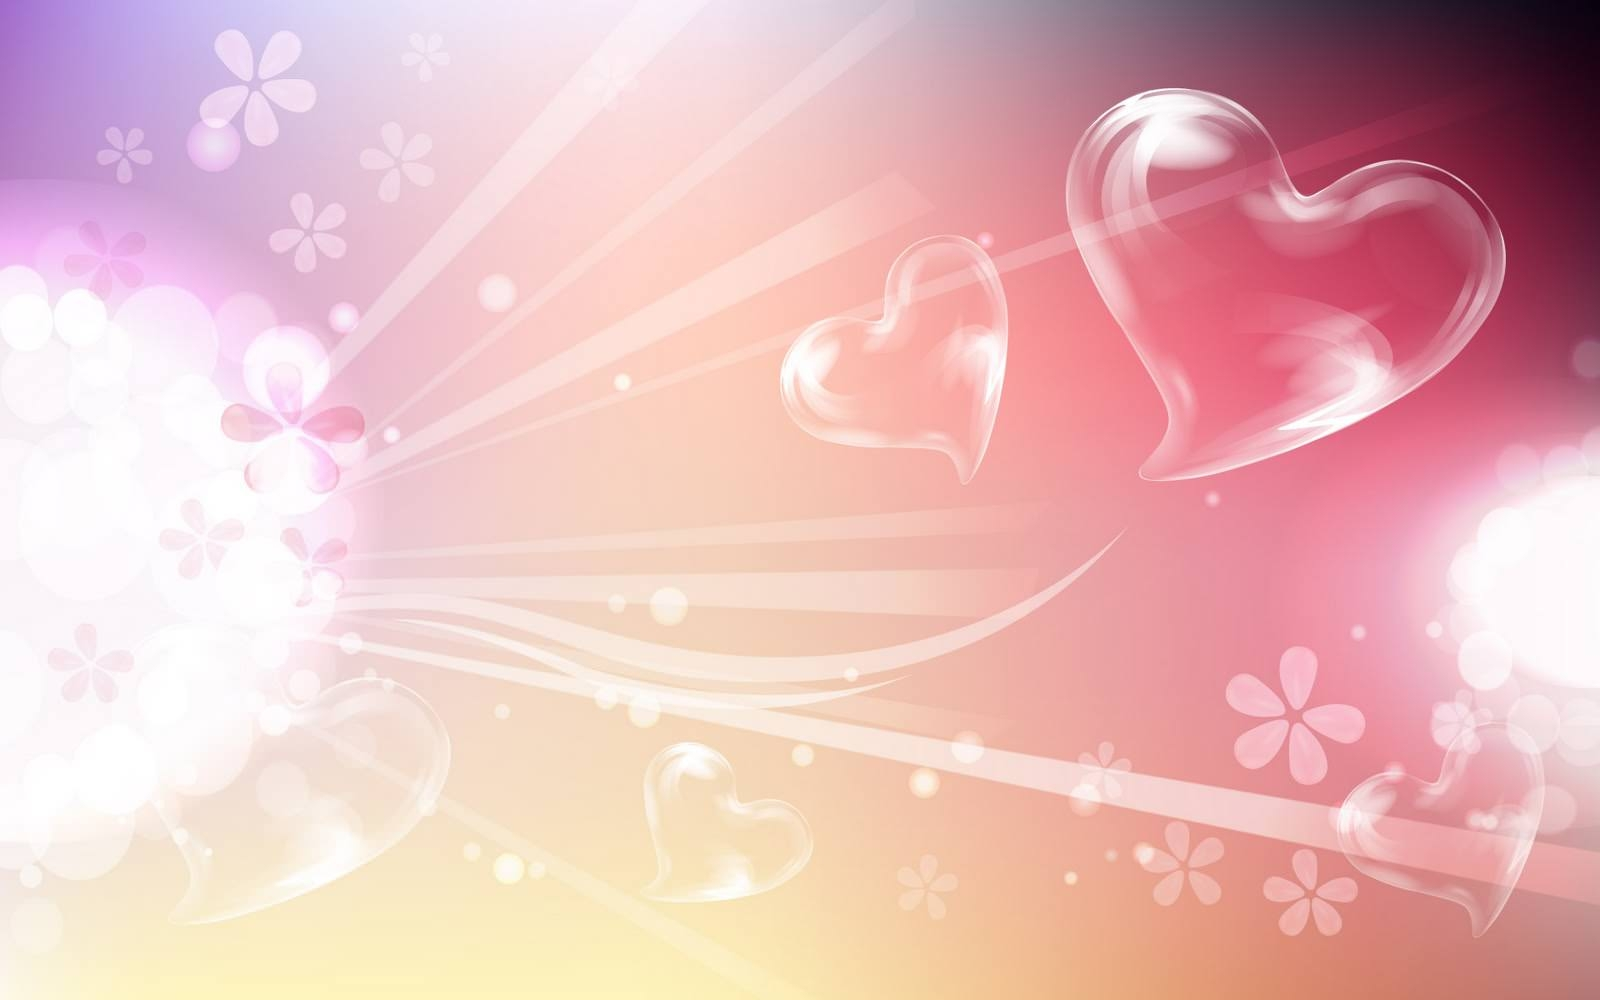 Love Wallpapers And Backgrounds : 22+ Love Backgrounds, Heart, Wallpapers, Images Freecreatives